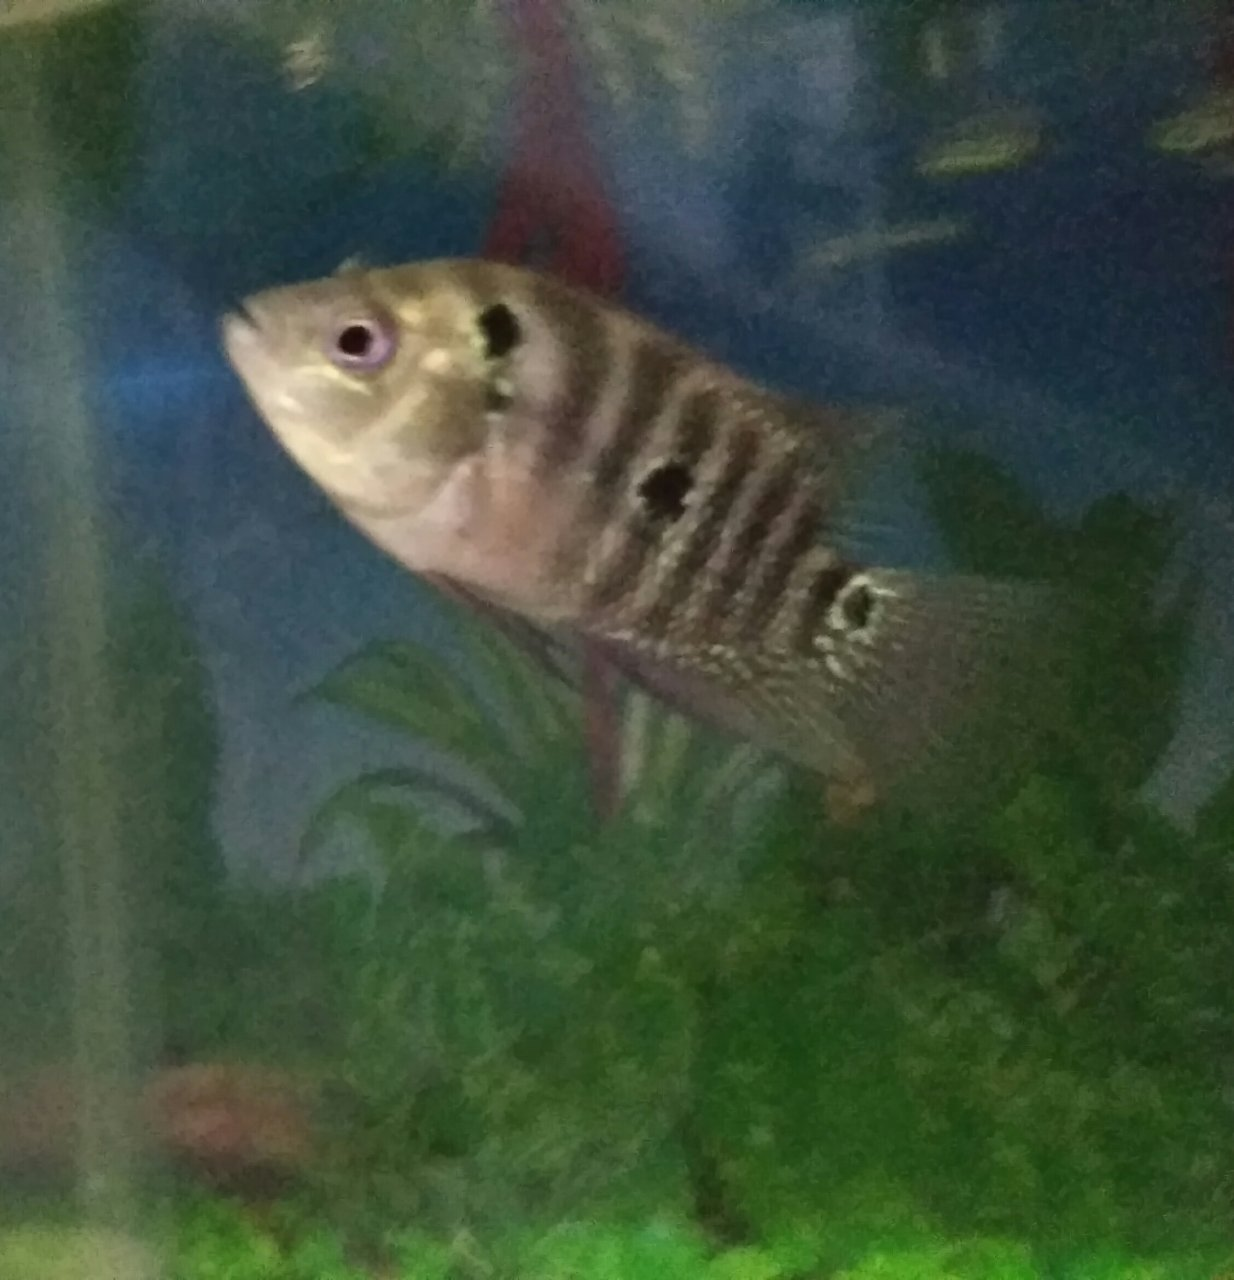 This Is My New Flowerhorn Baby\'s But Two Of Them Are Different In ...